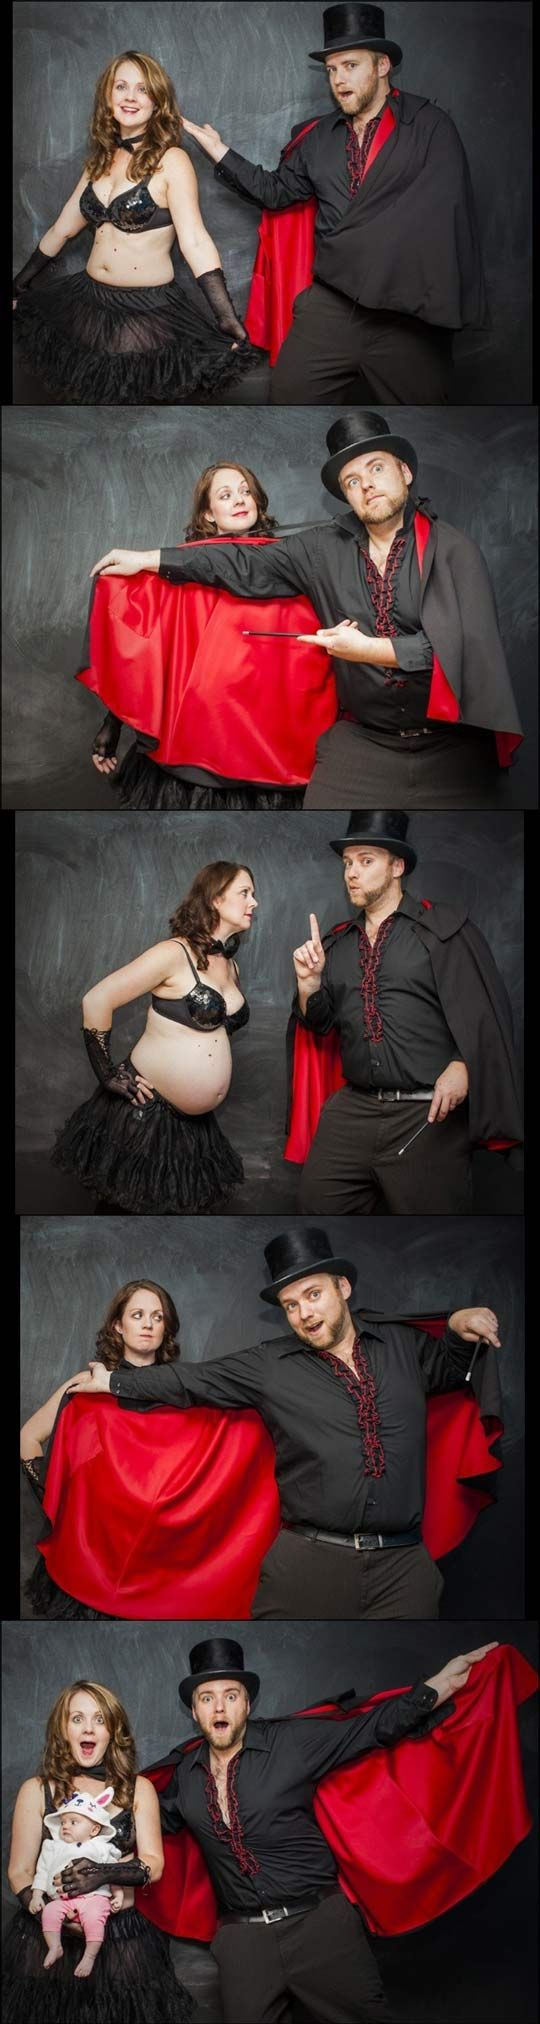 Magician dad announcement�: Photos, Picture, Baby Announcement, Photo Ideas, Stuff, Pregnancy, Funny, Photography